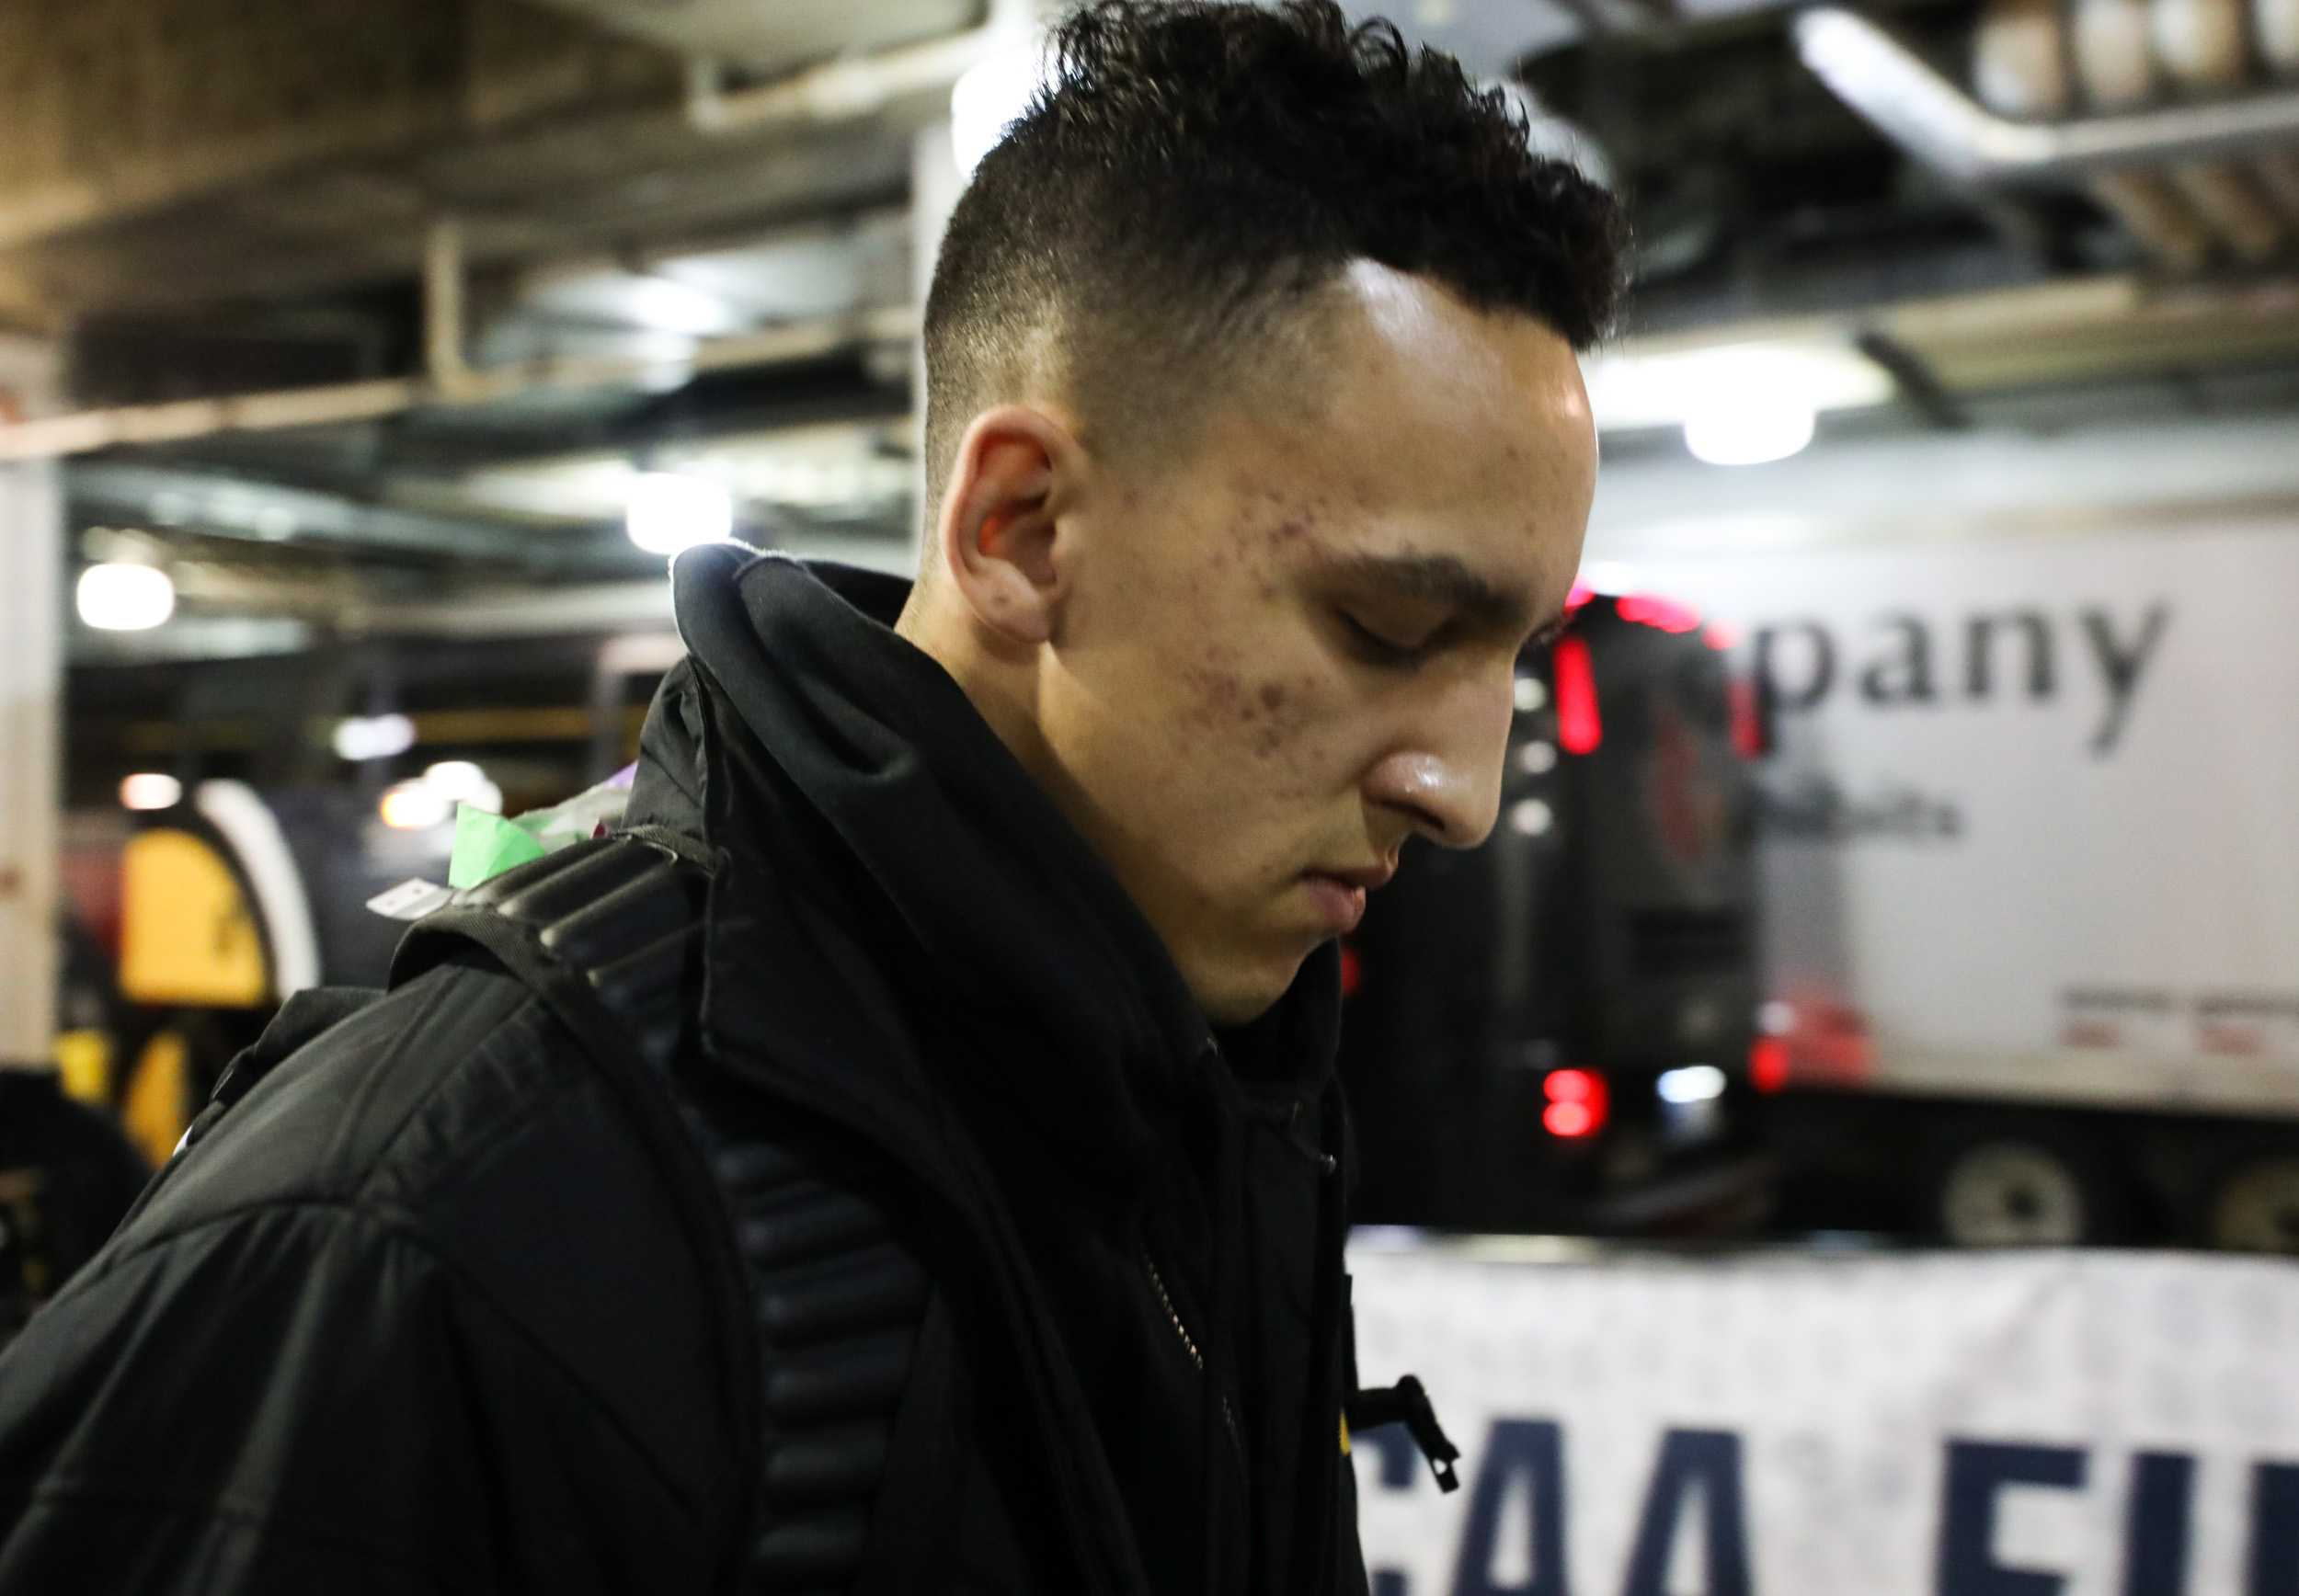 Wichita State's Landry Shamet enters Bankers Life Fieldhouse in Indianapolis on Friday afternoon before the NCAA Tournament game against Dayton. (Mar. 17, 2017)